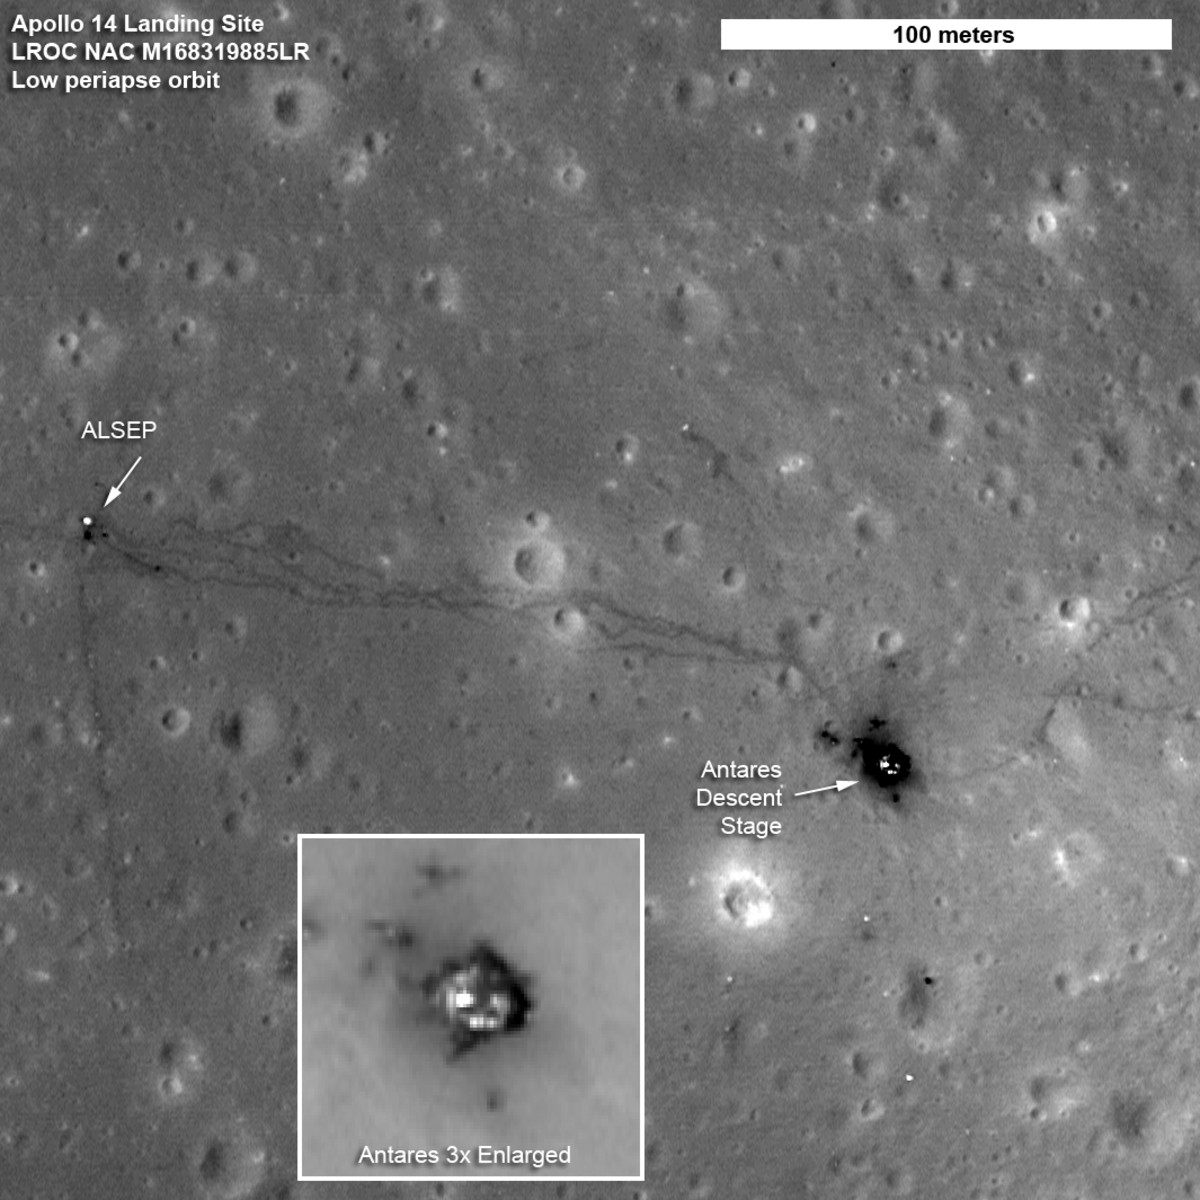 September 2010: Nice! Special maneuver brought the LRO down from about 31 miles above the surface to nearly 13 miles.